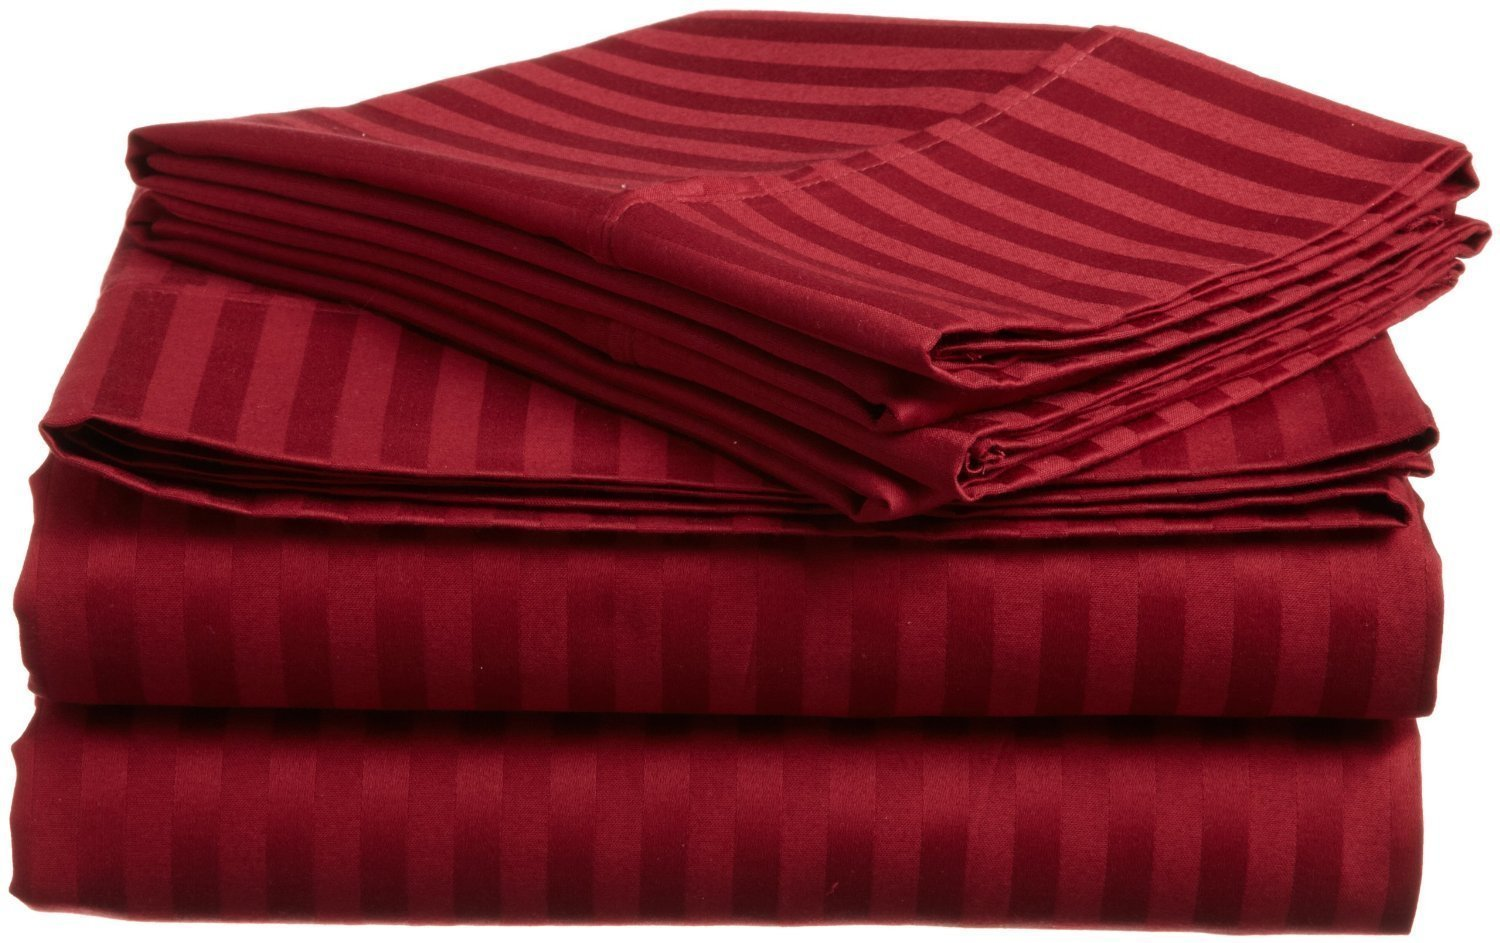 Craftique Beddings 400 Thread Count Pure Pure Egyptian Cotton Super Soft 3-Piece (Flat Sheet + Pillow Cases) Full Extra Long Striped Burgundy